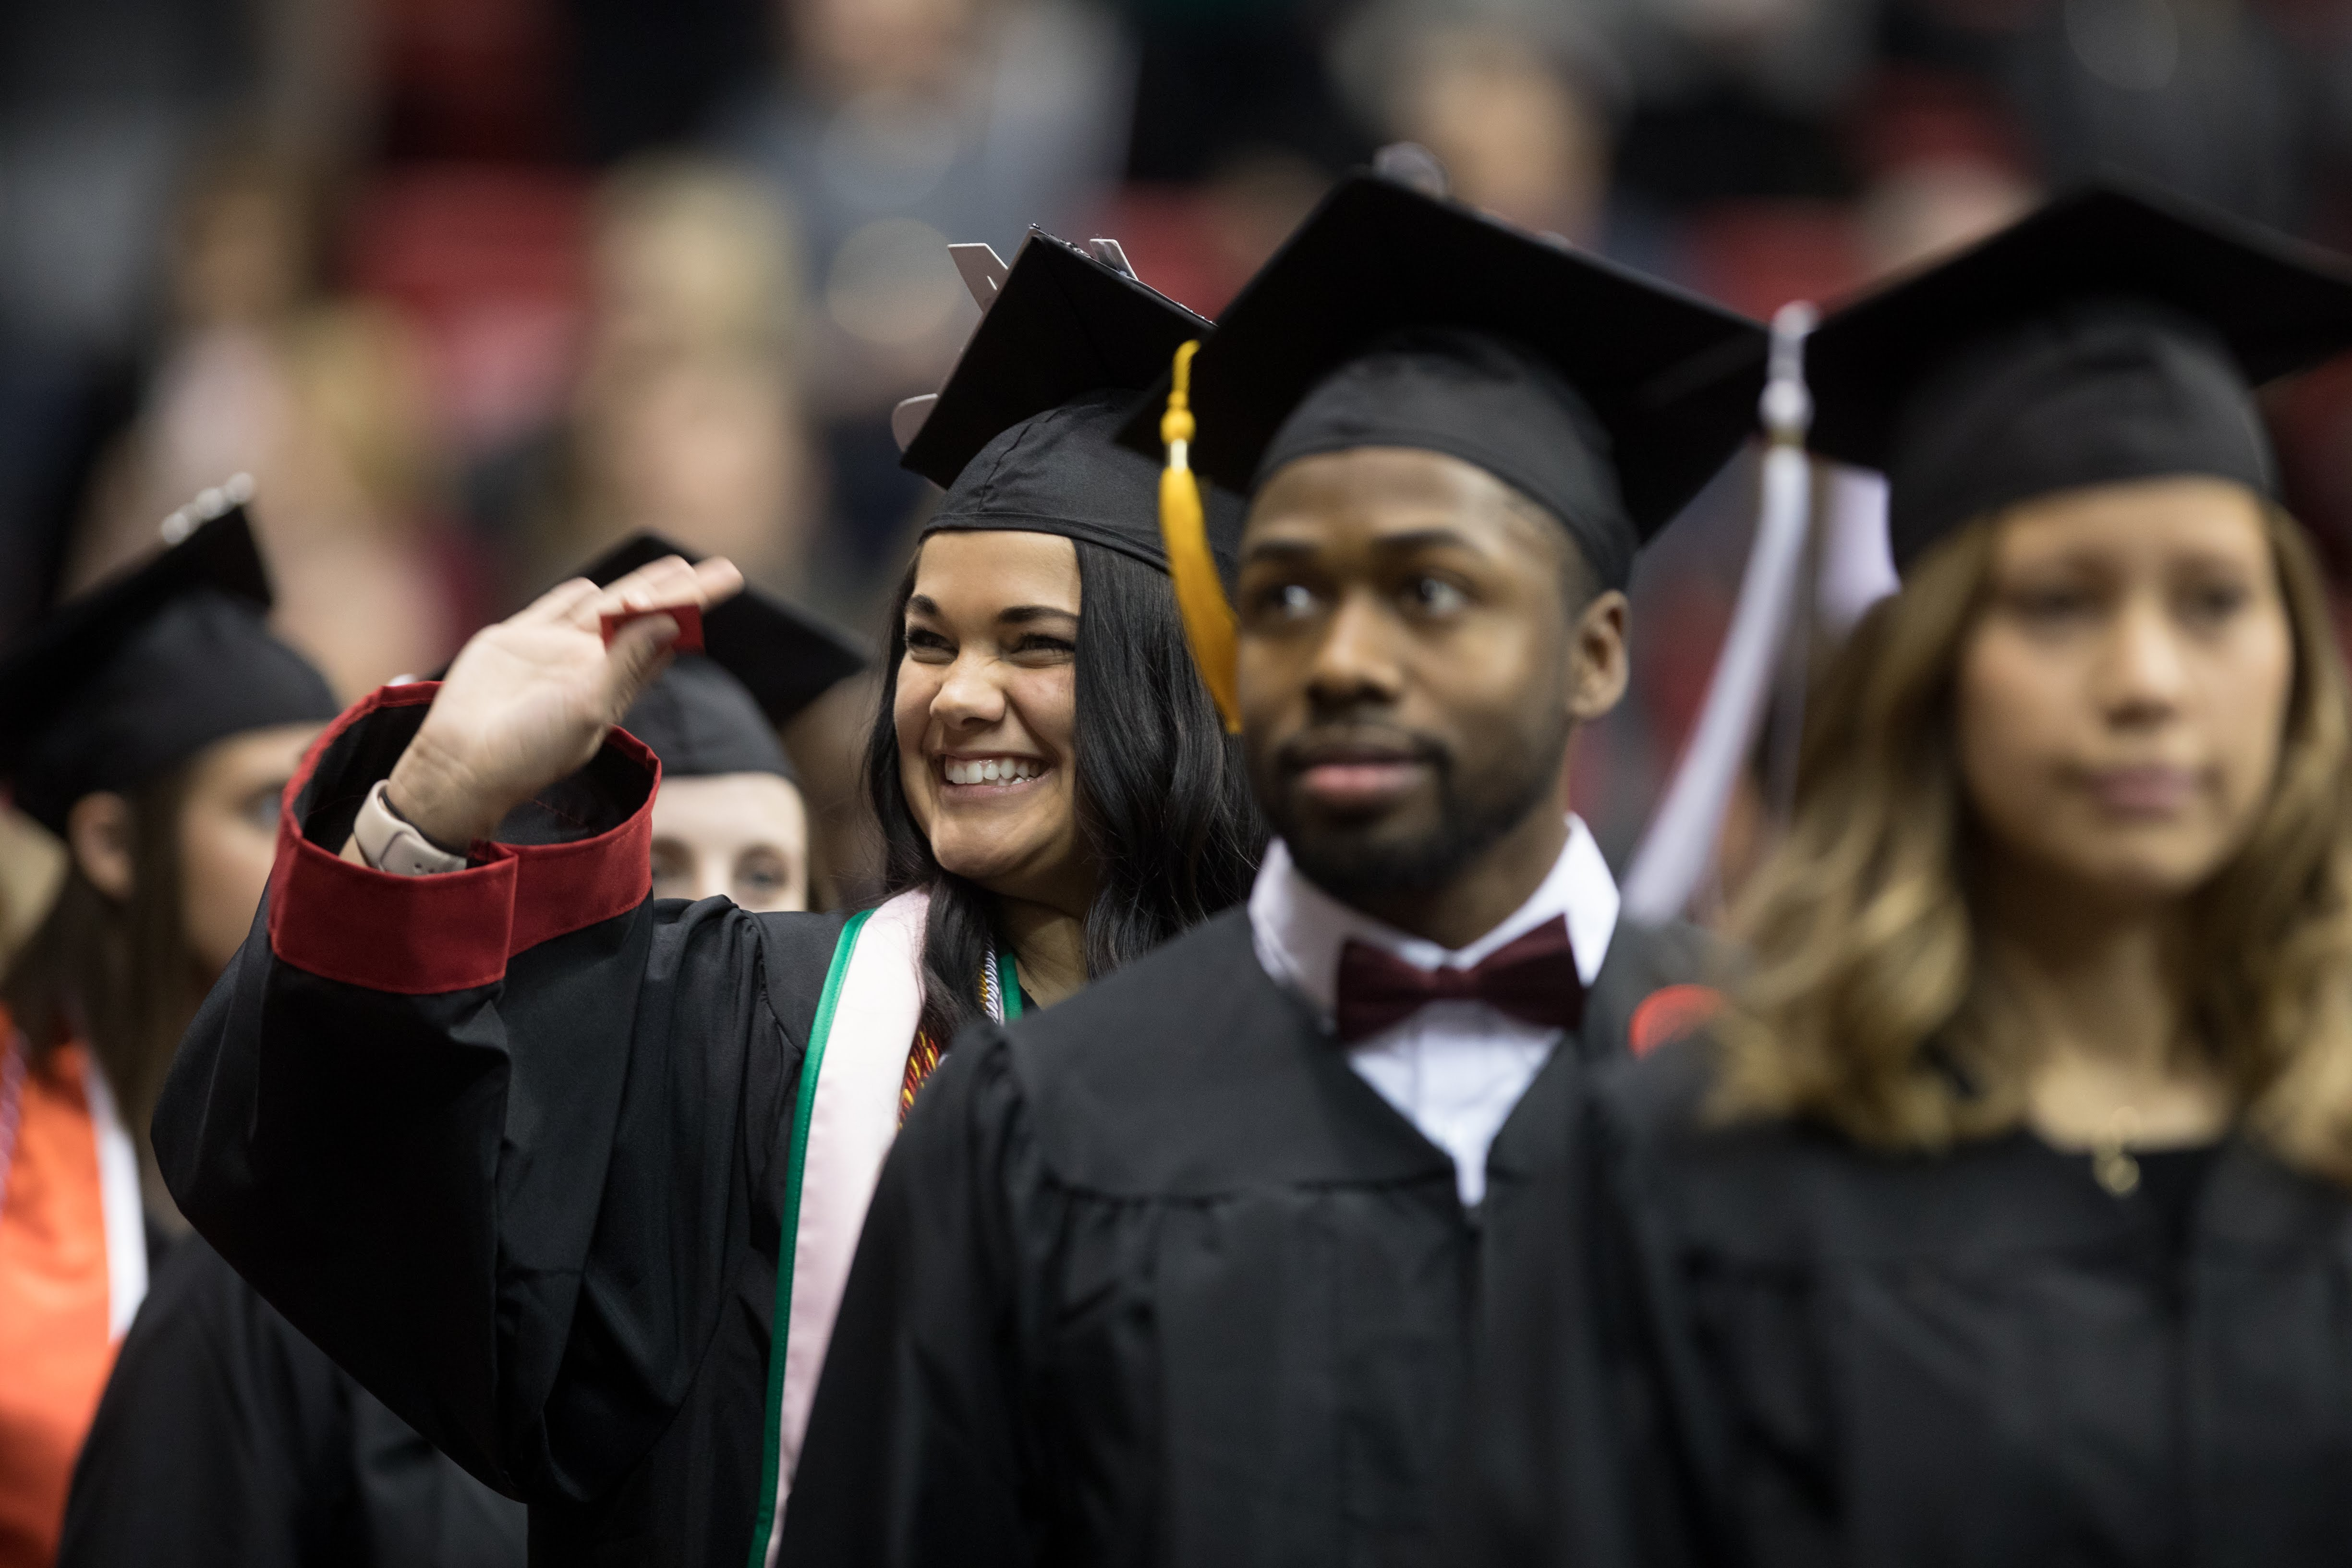 A student wearing a cap and gown during Commencement at Cal U.